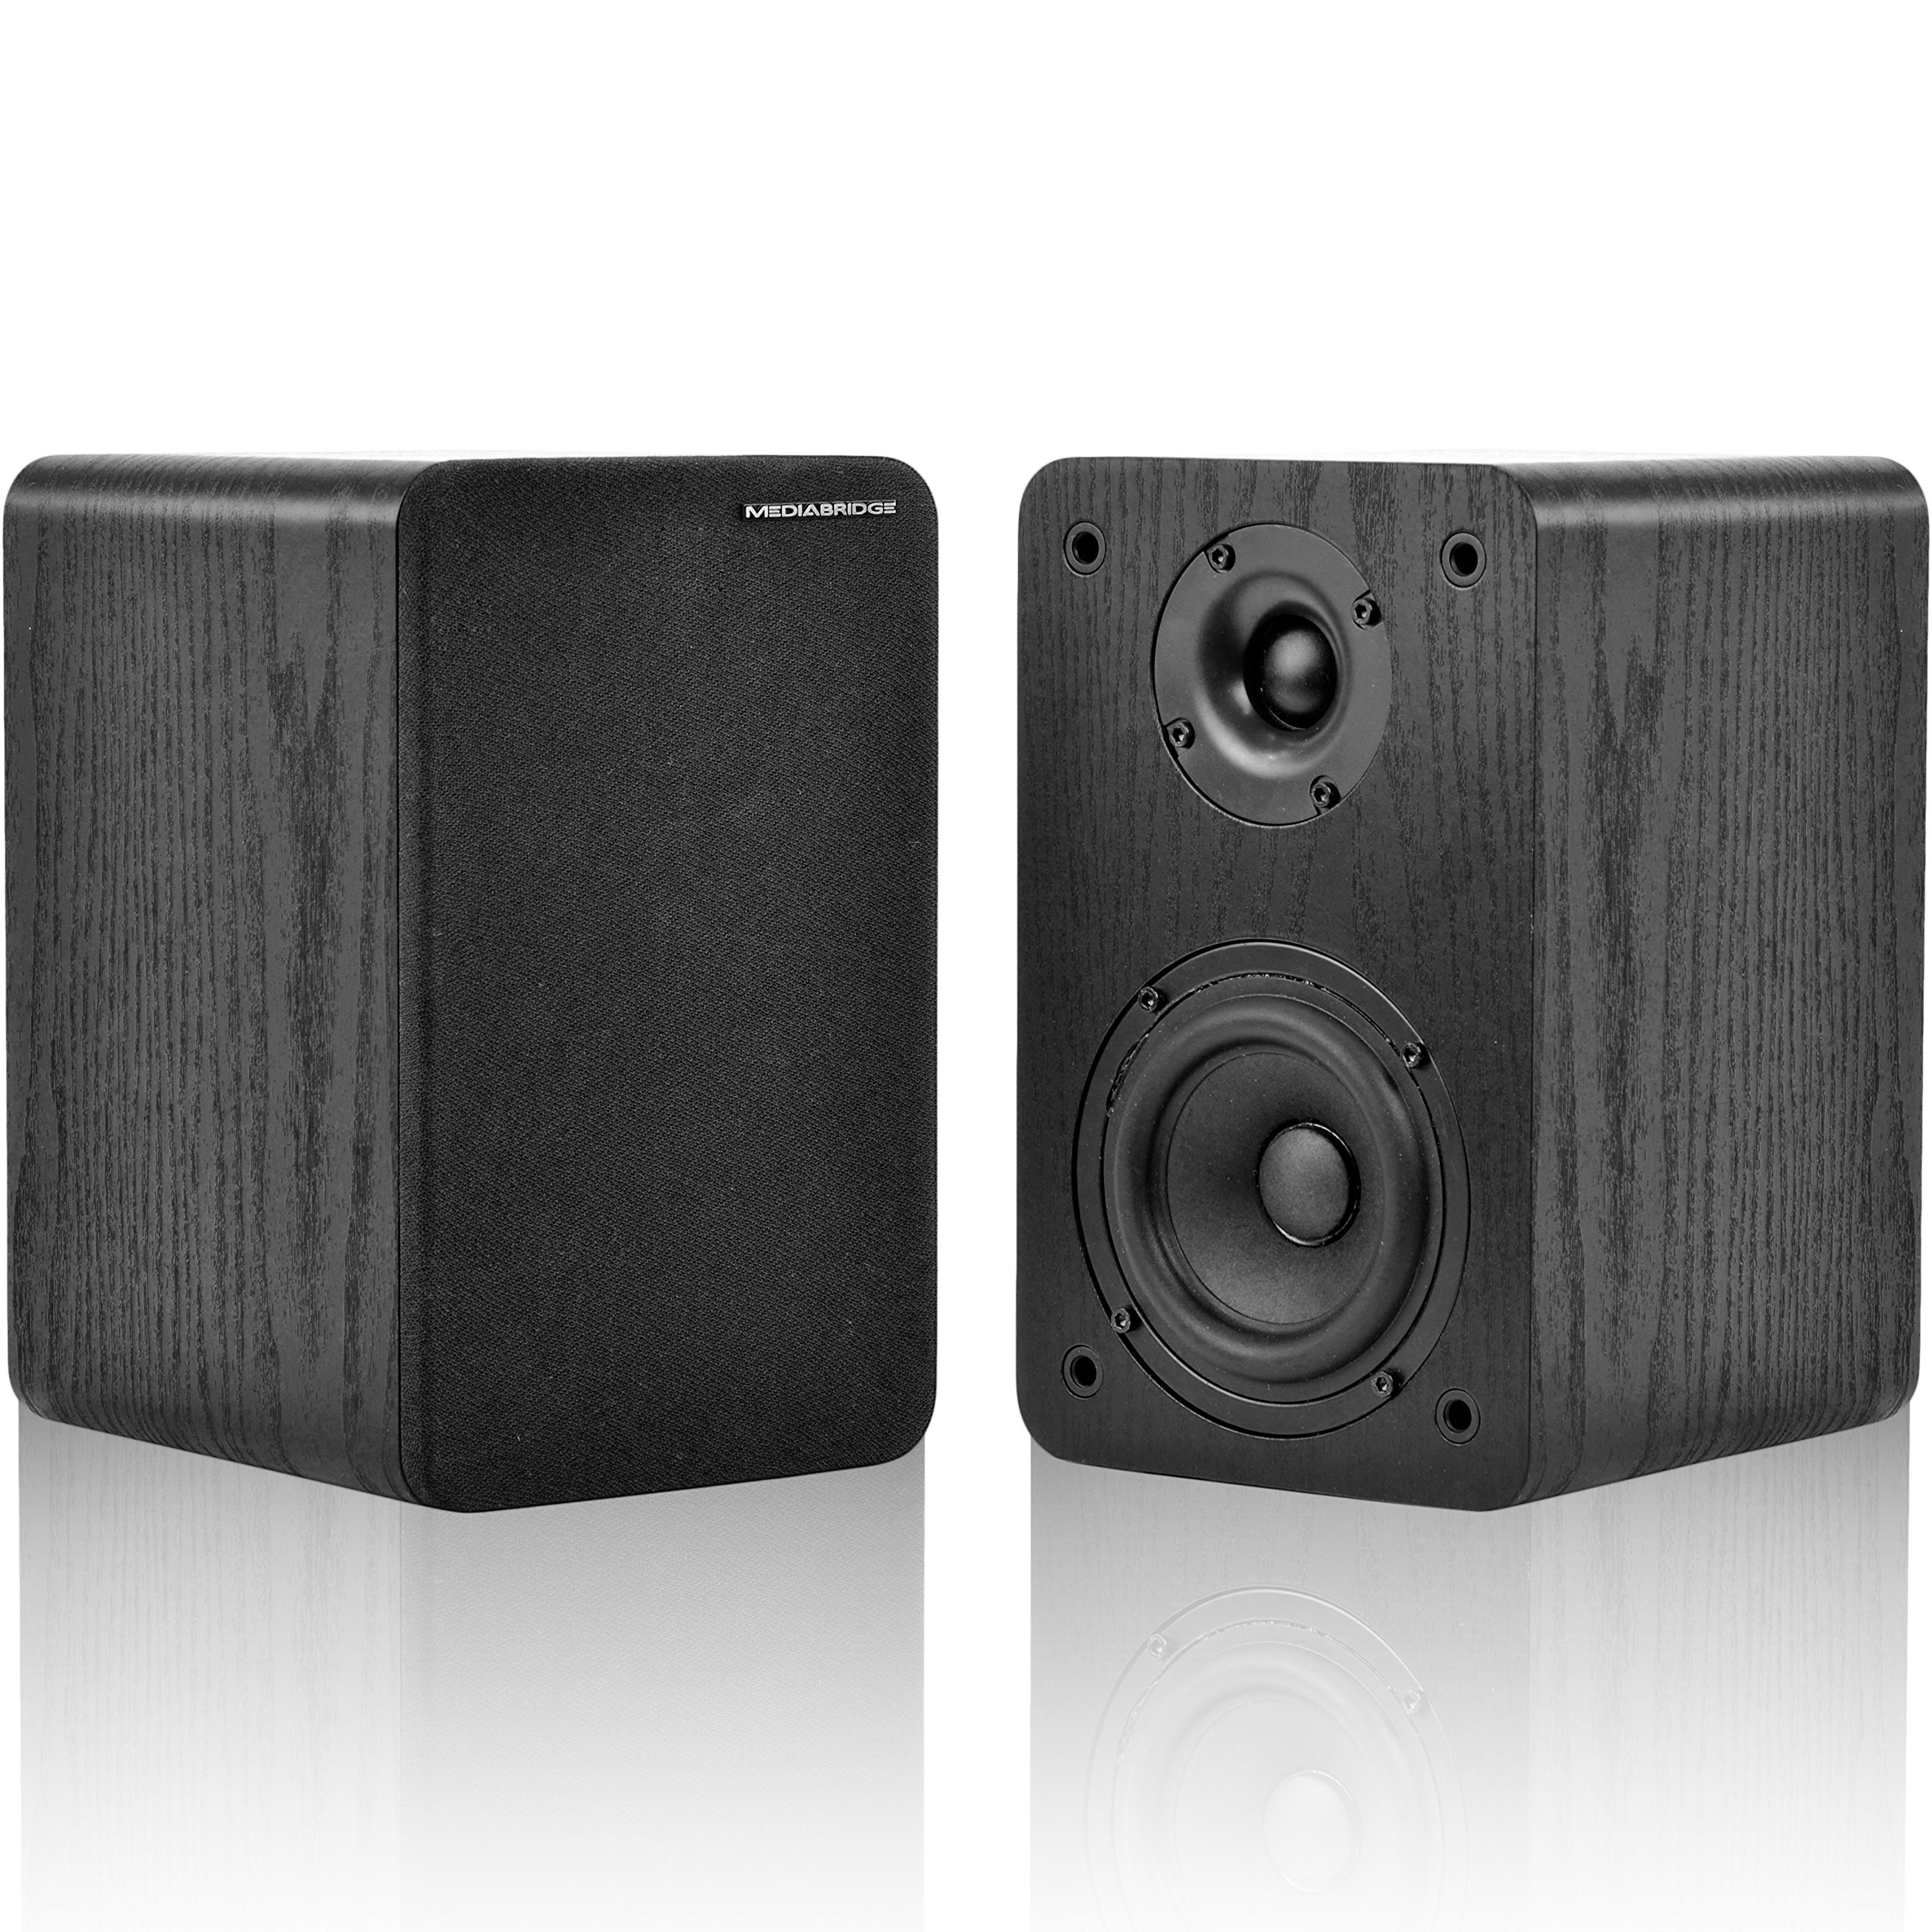 Mediabridge Bookshelf Speakers Pair With 4-Inch Carbon Fiber Woofer & 1-Inch Silk Dome Tweeter - Black Enclosure (Part# MS-BP1B)